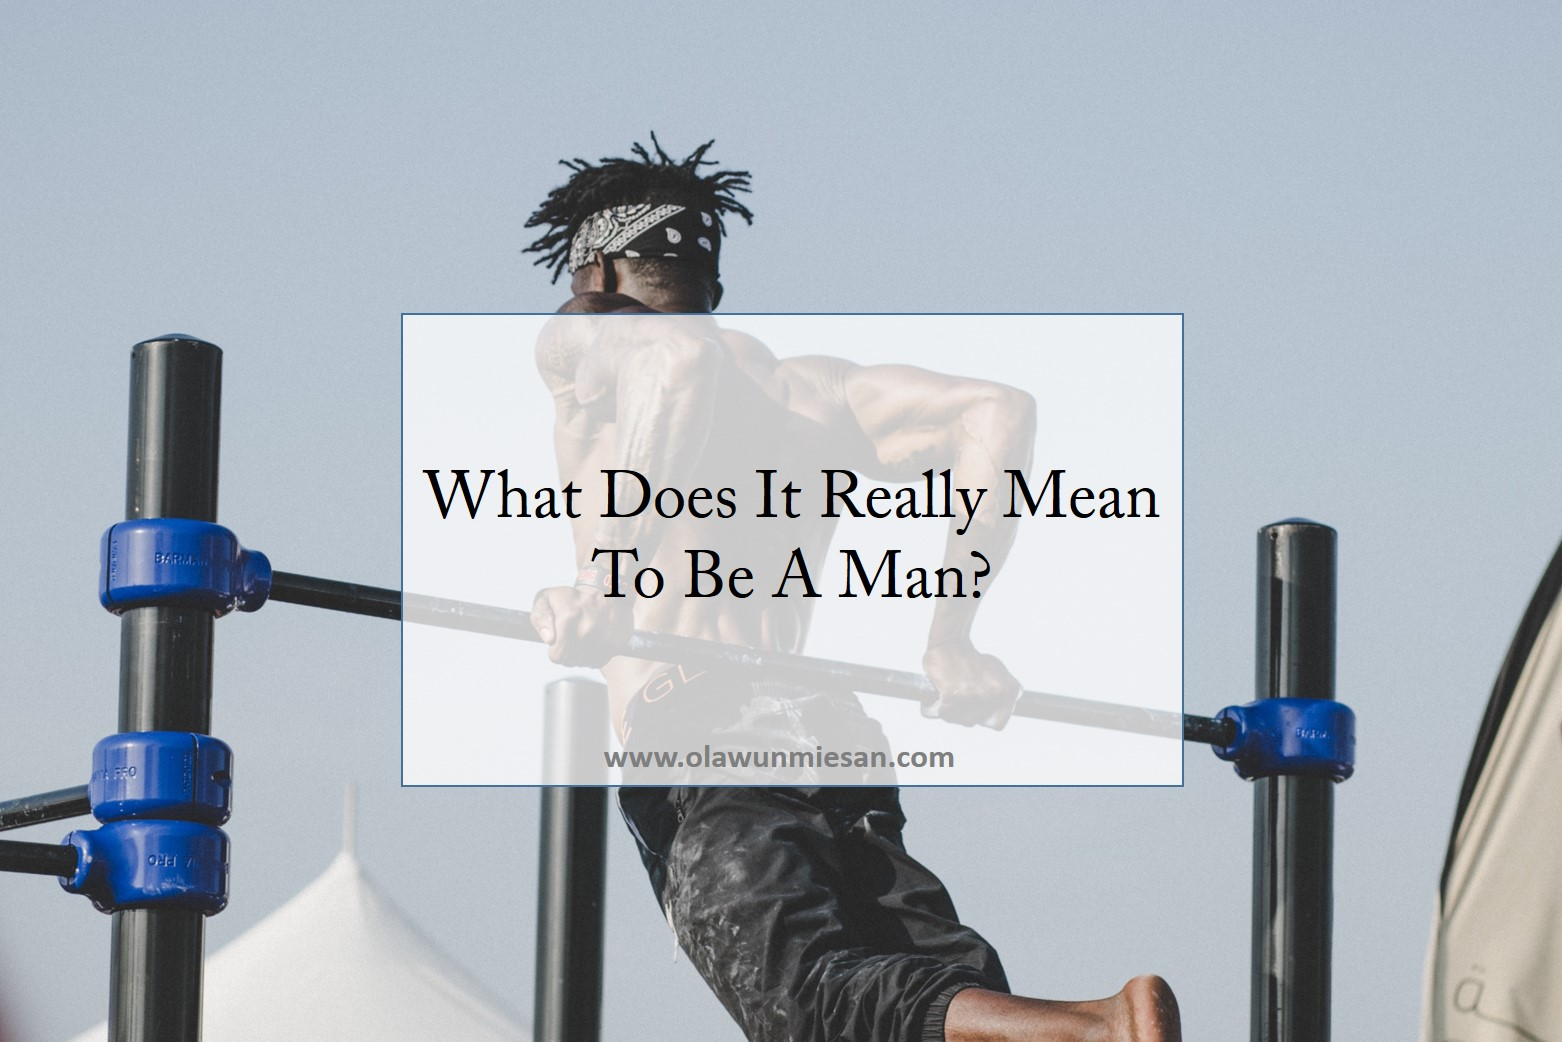 What Does It Really Mean To Be A Man?